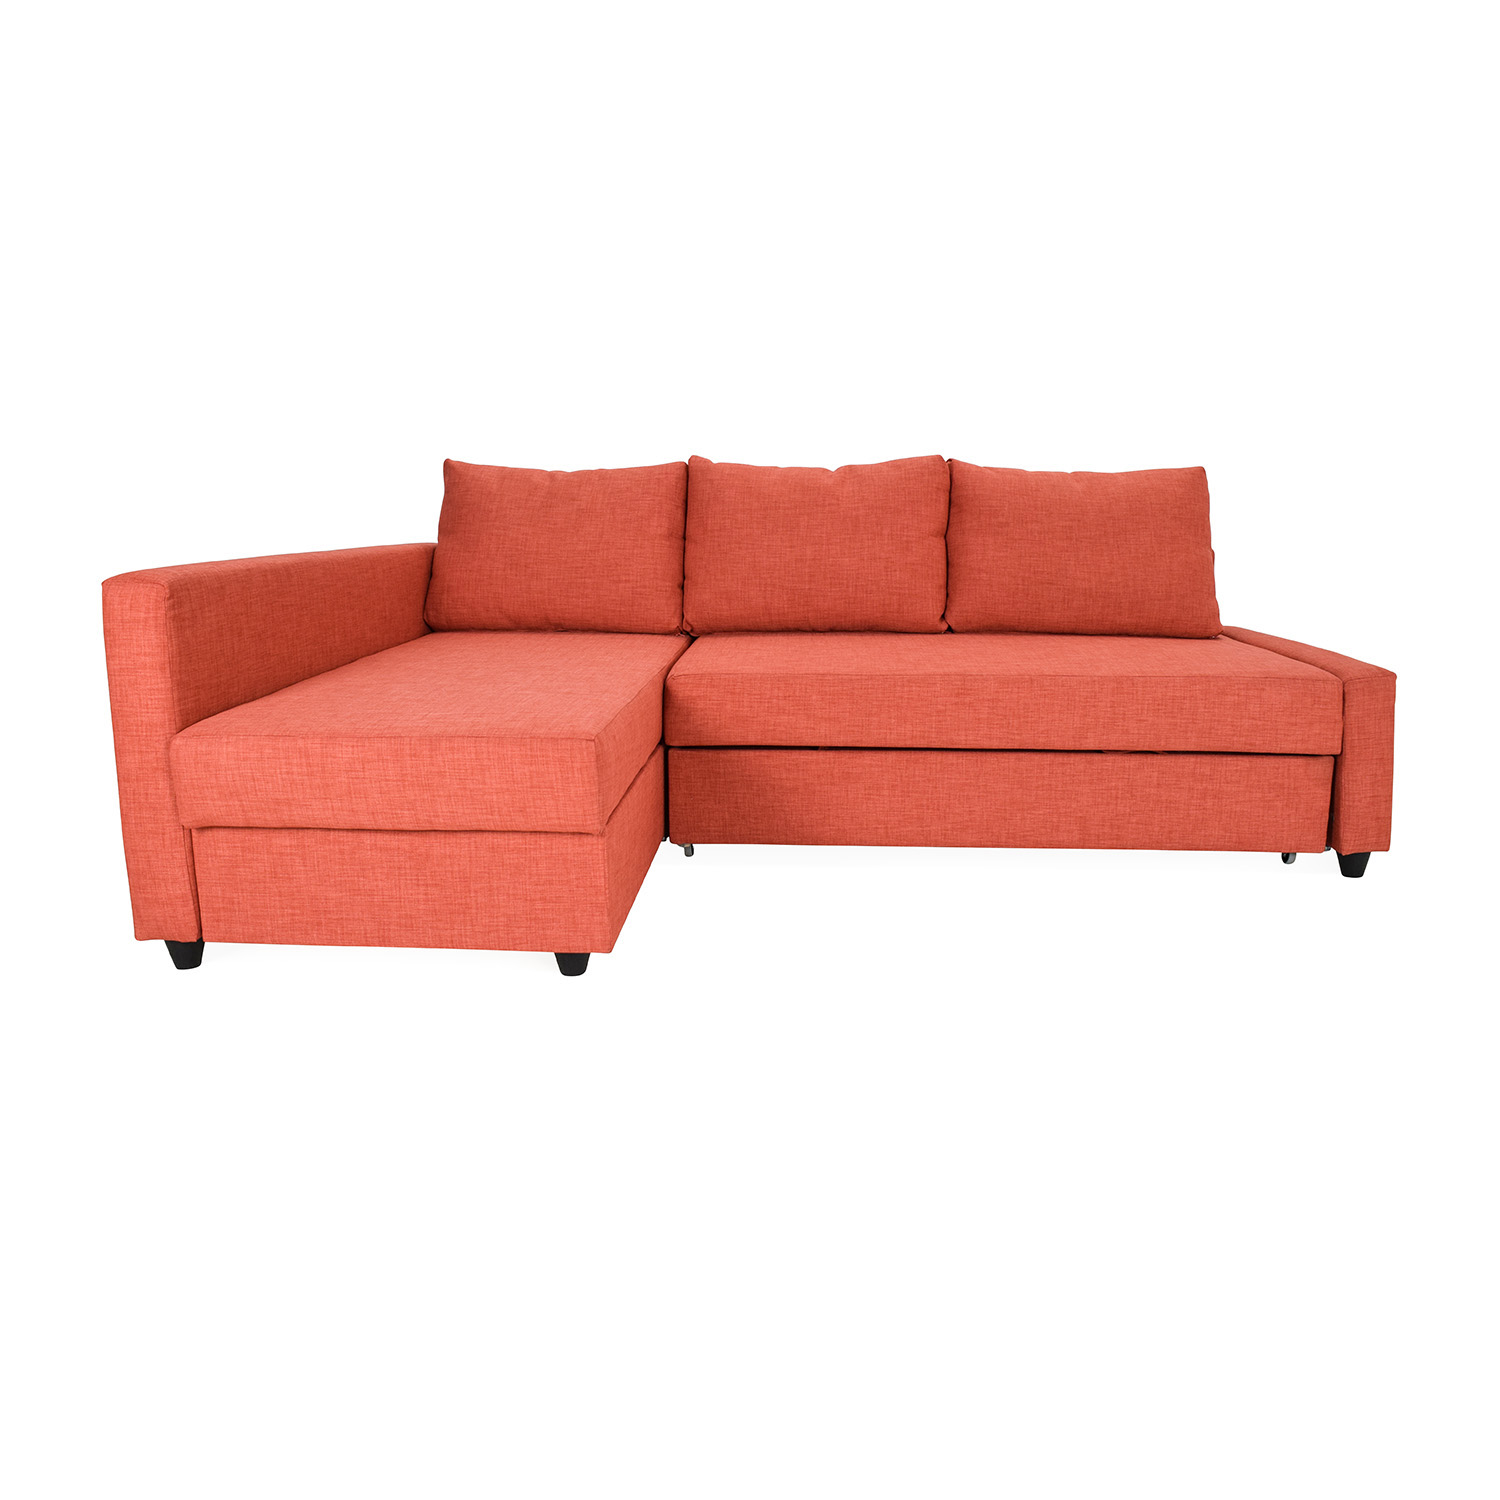 Orange Ikea Sofa The 20 Best For My Ikea Orange Sofa